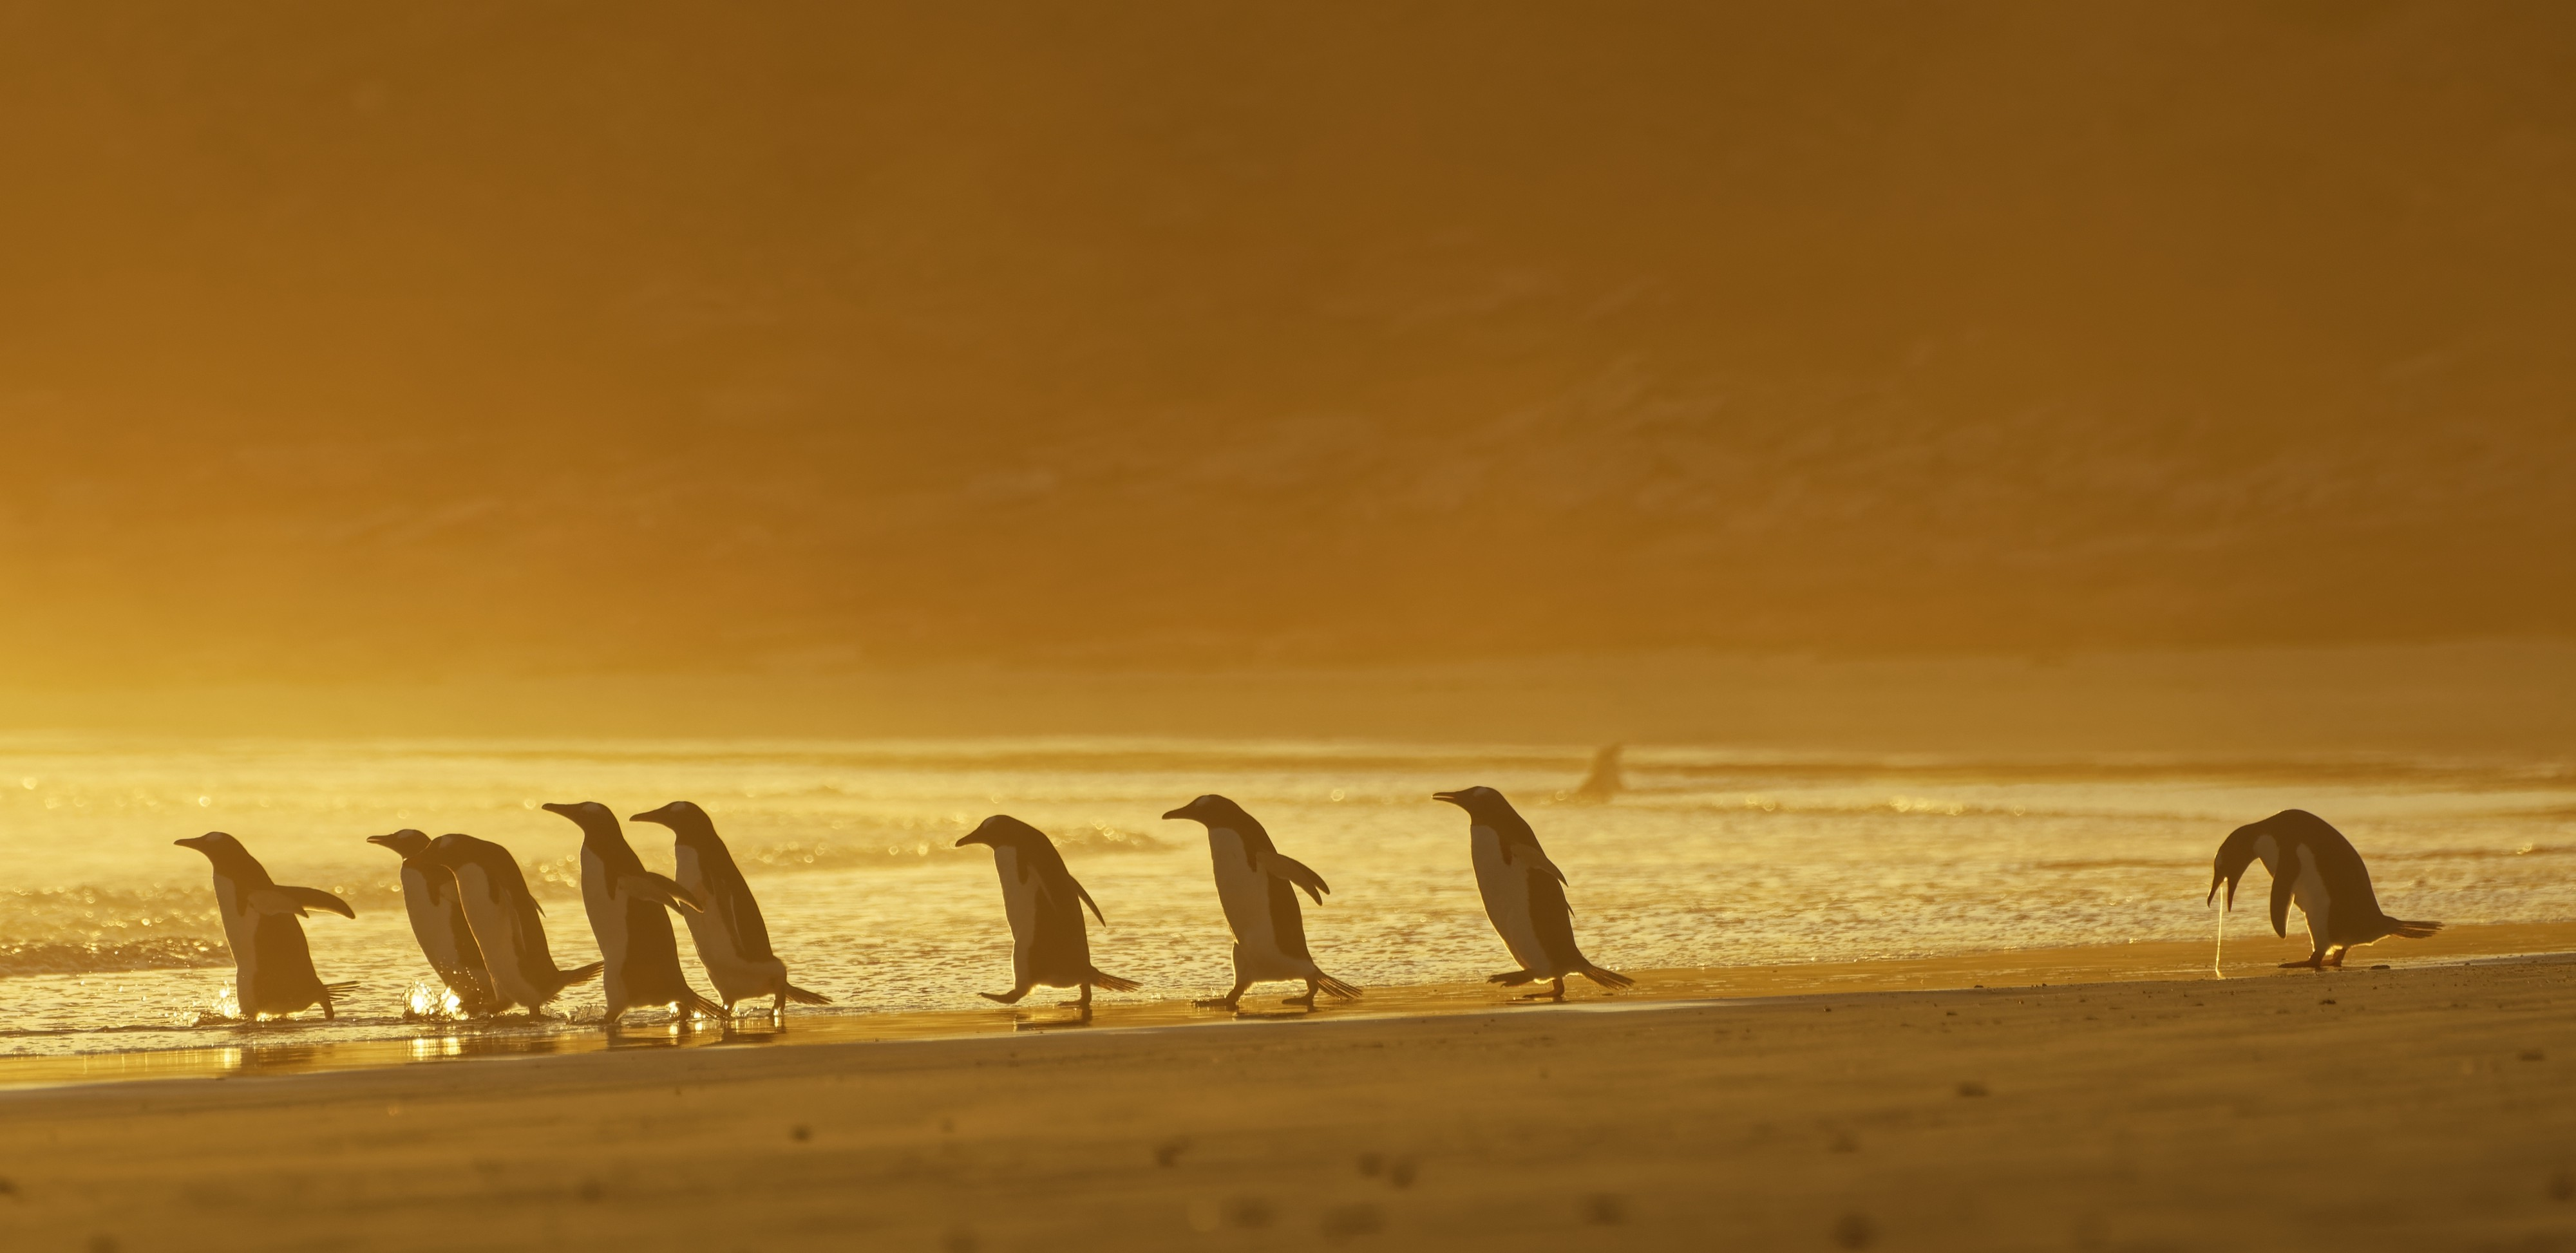 A trail of penguins walk along the beach, but one in the back appears to be regurgitating